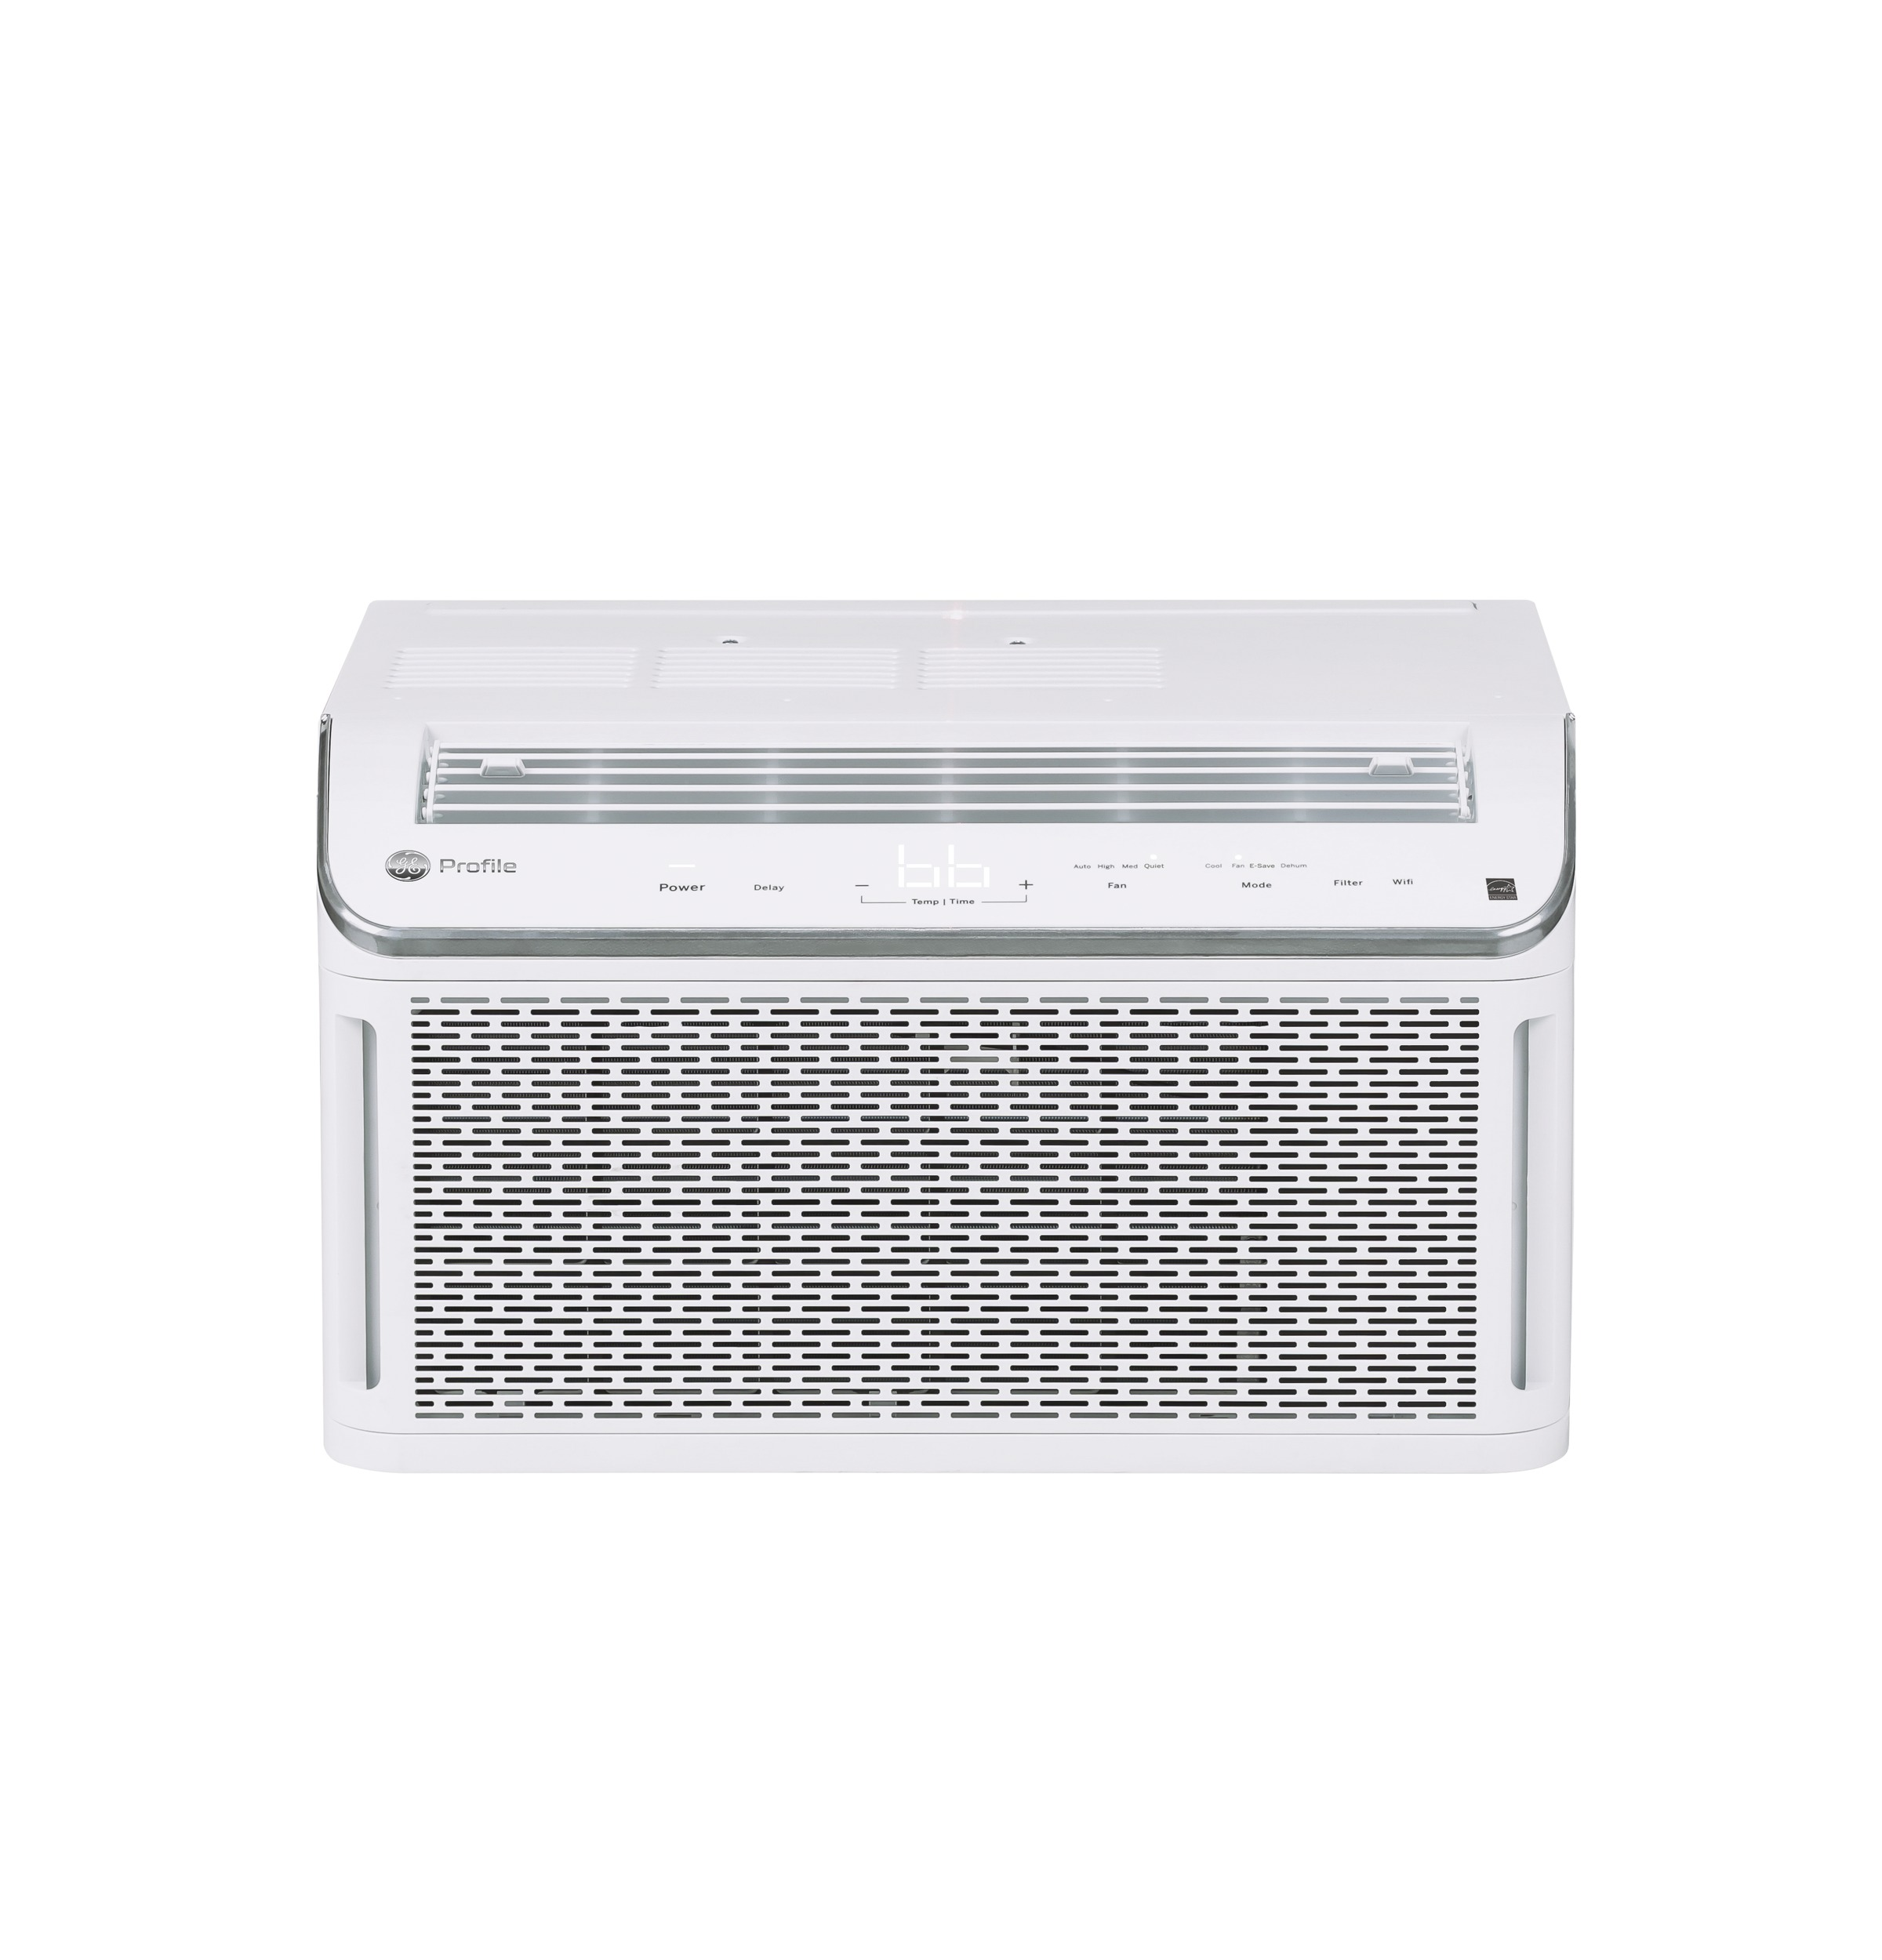 GE Profile GE® ENERGY STAR® 8,100 BTU Smart Ultra Quiet Window Air Conditioner for Medium Rooms up to 350 sq. ft.